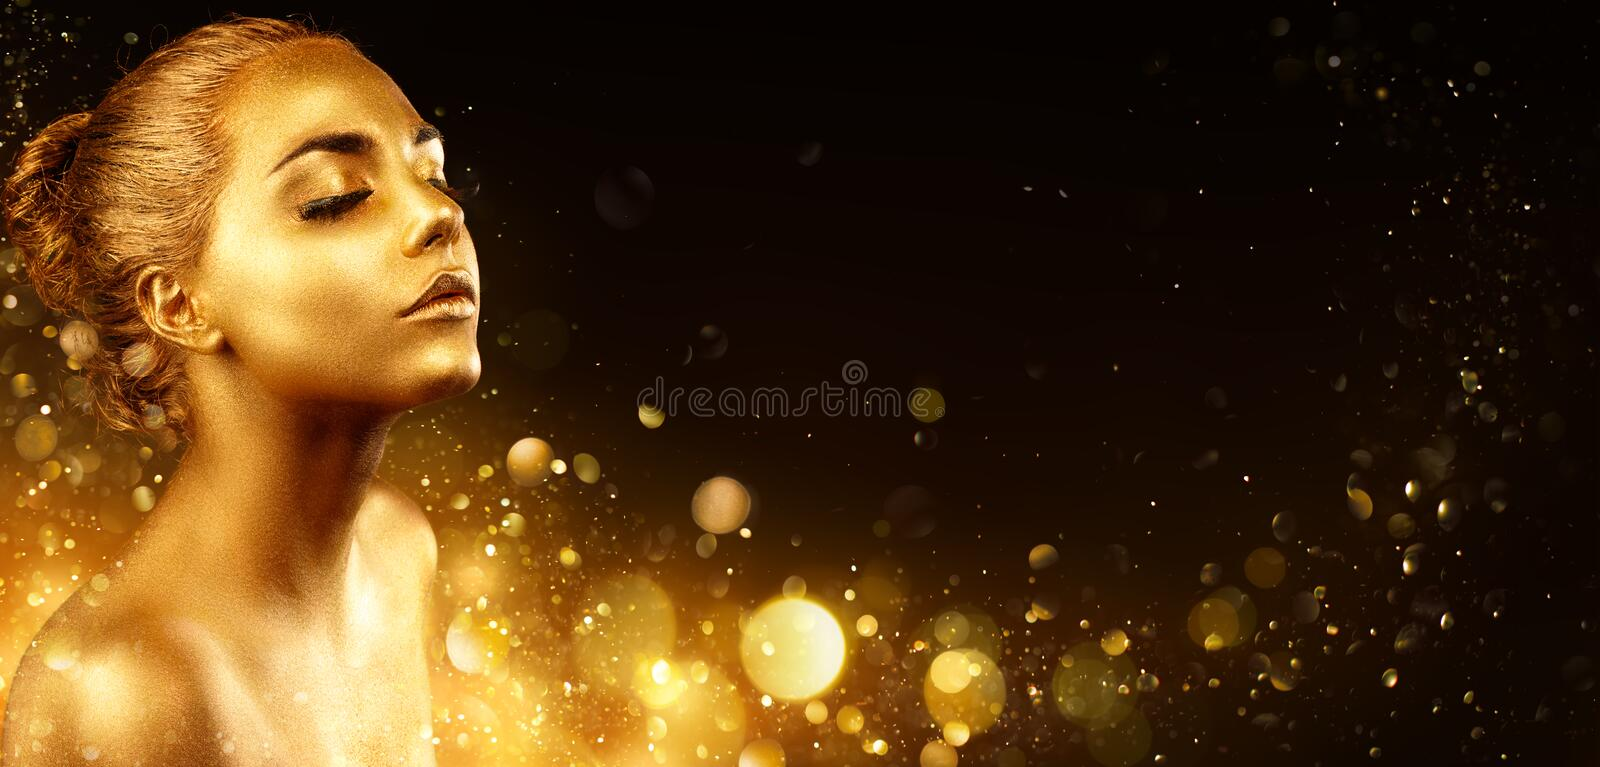 Maquillage d'or - peau de Portrait With Gold de mannequin et scintillement image libre de droits